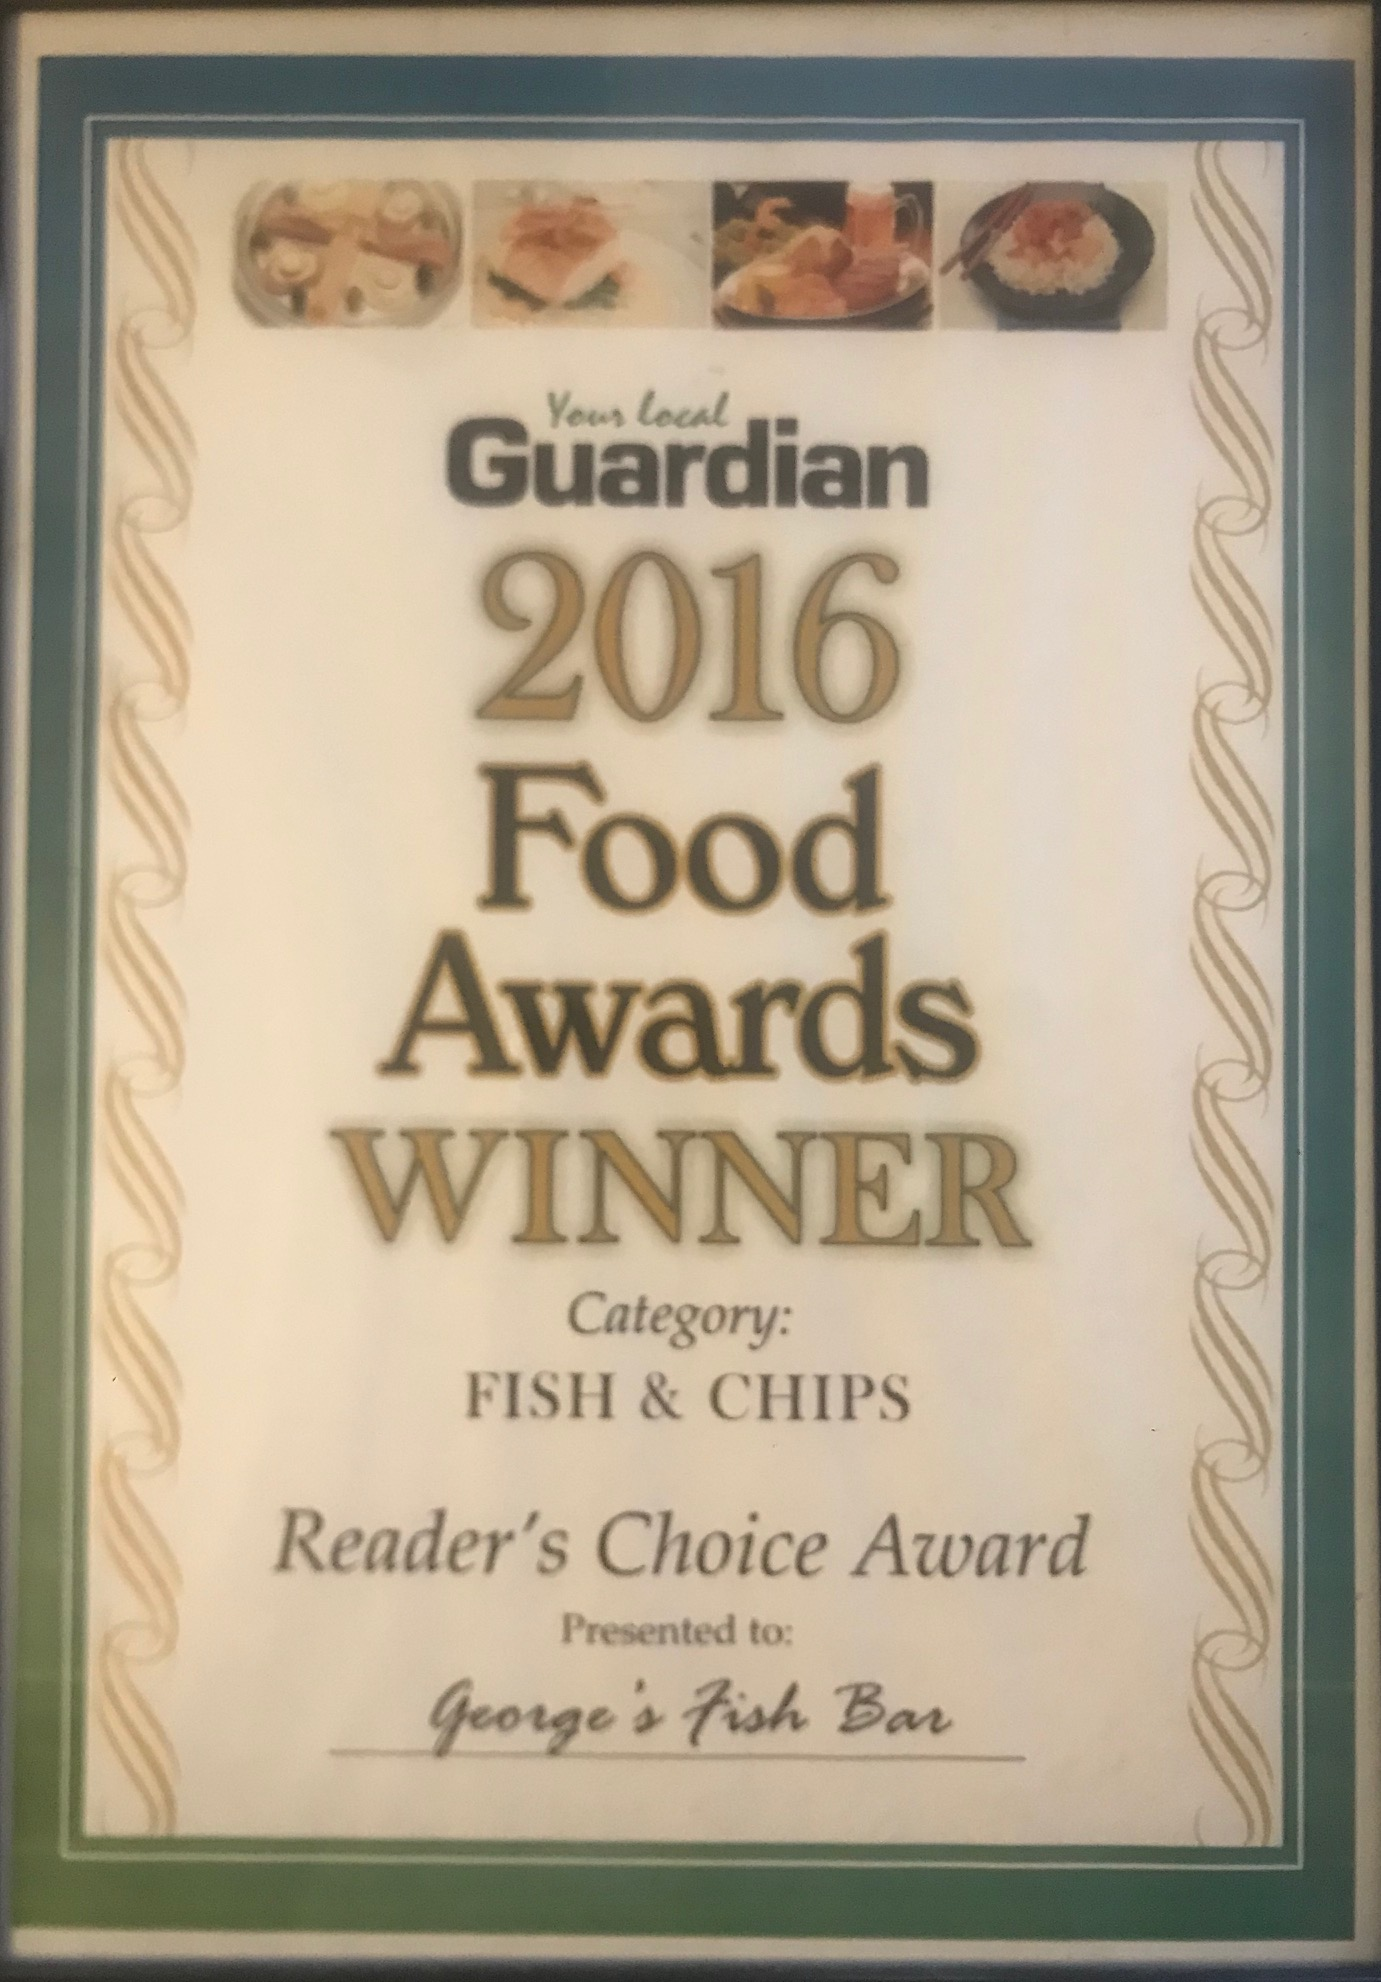 georges-fishbar-award-local-guardian-2016